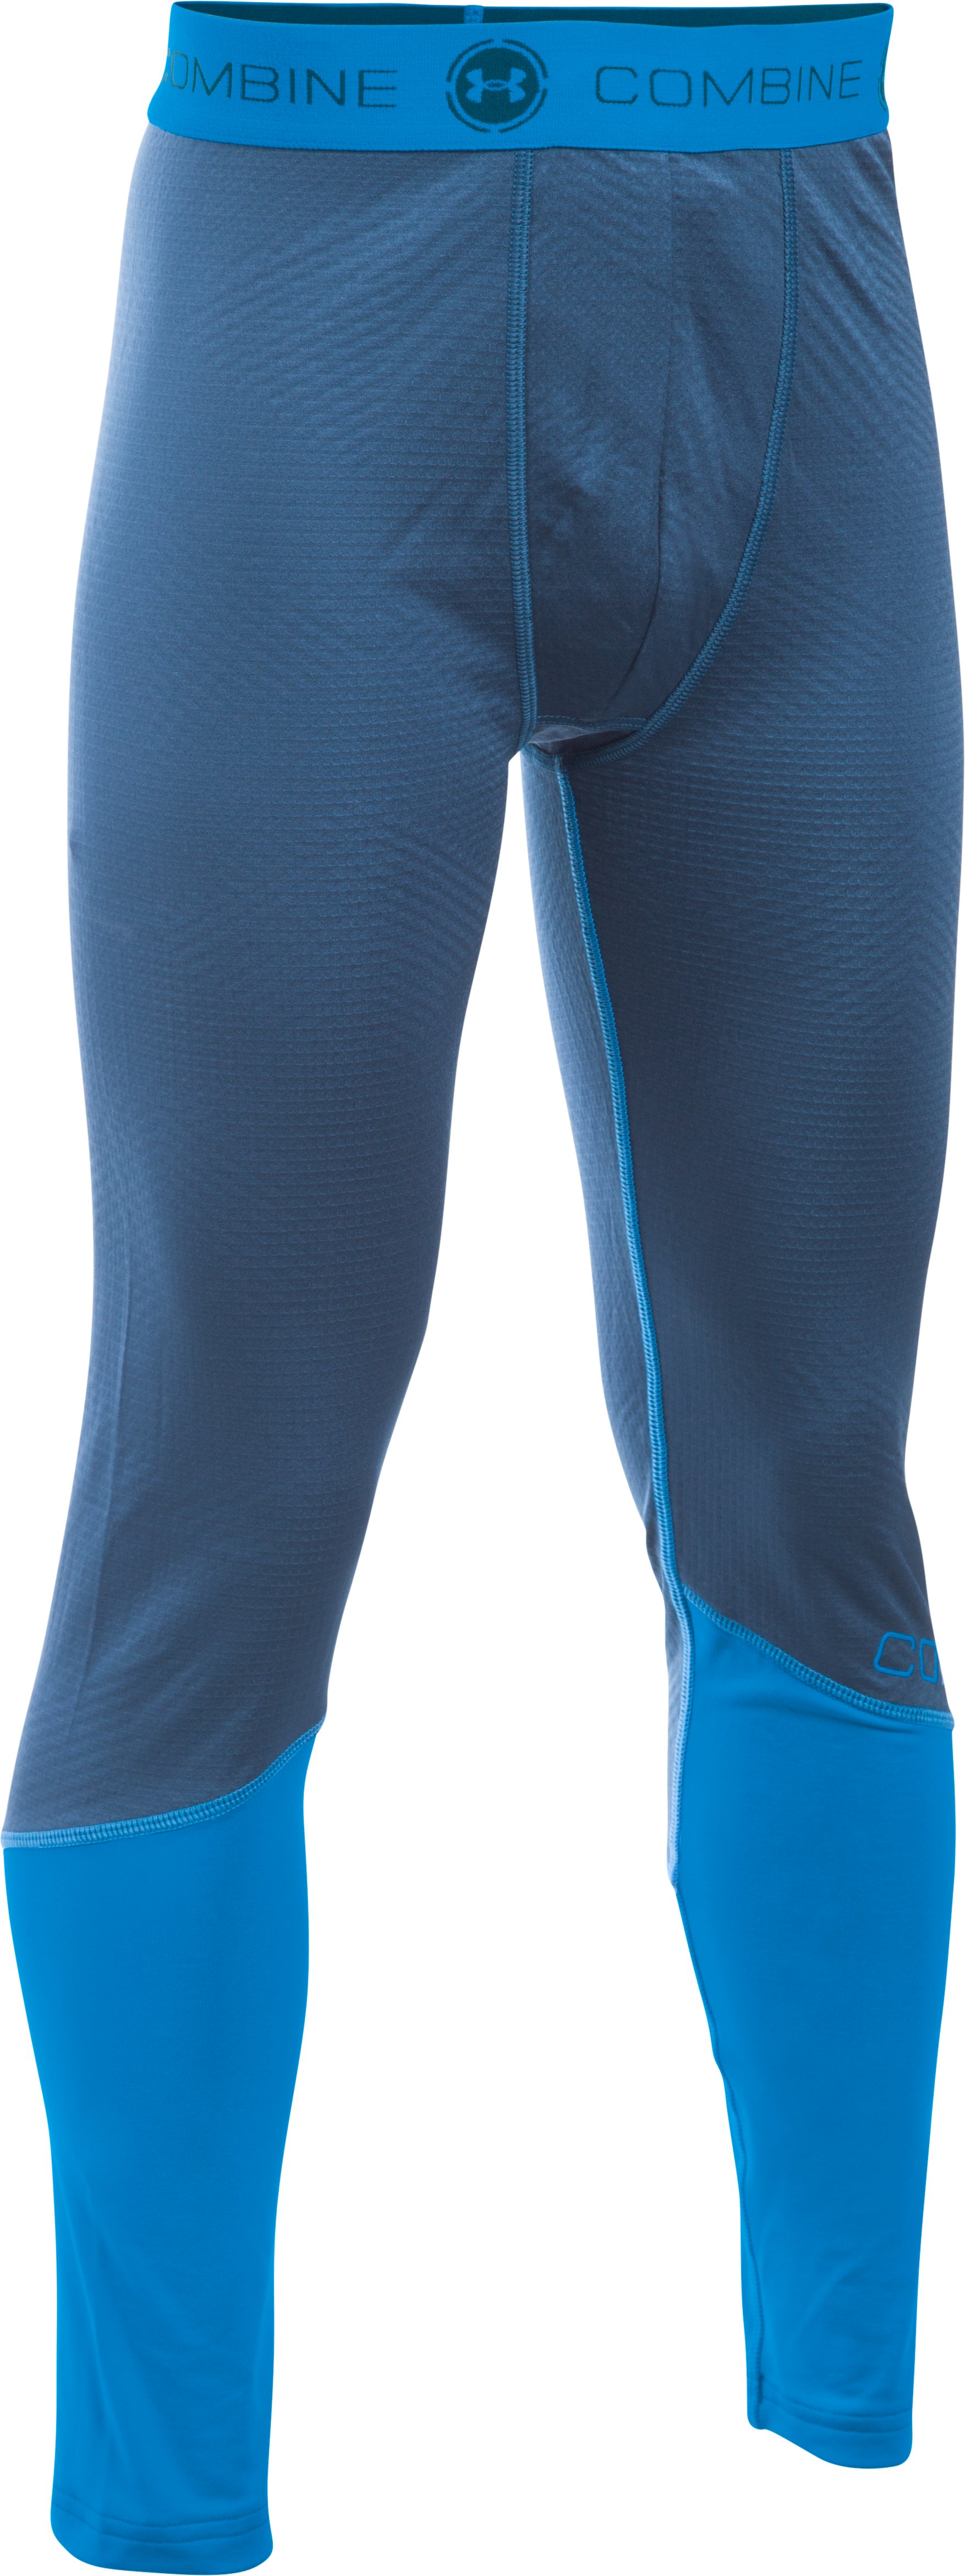 Boys' UA Combine® Training ColdGear® Infrared Fitted Leggings, PETROL BLUE